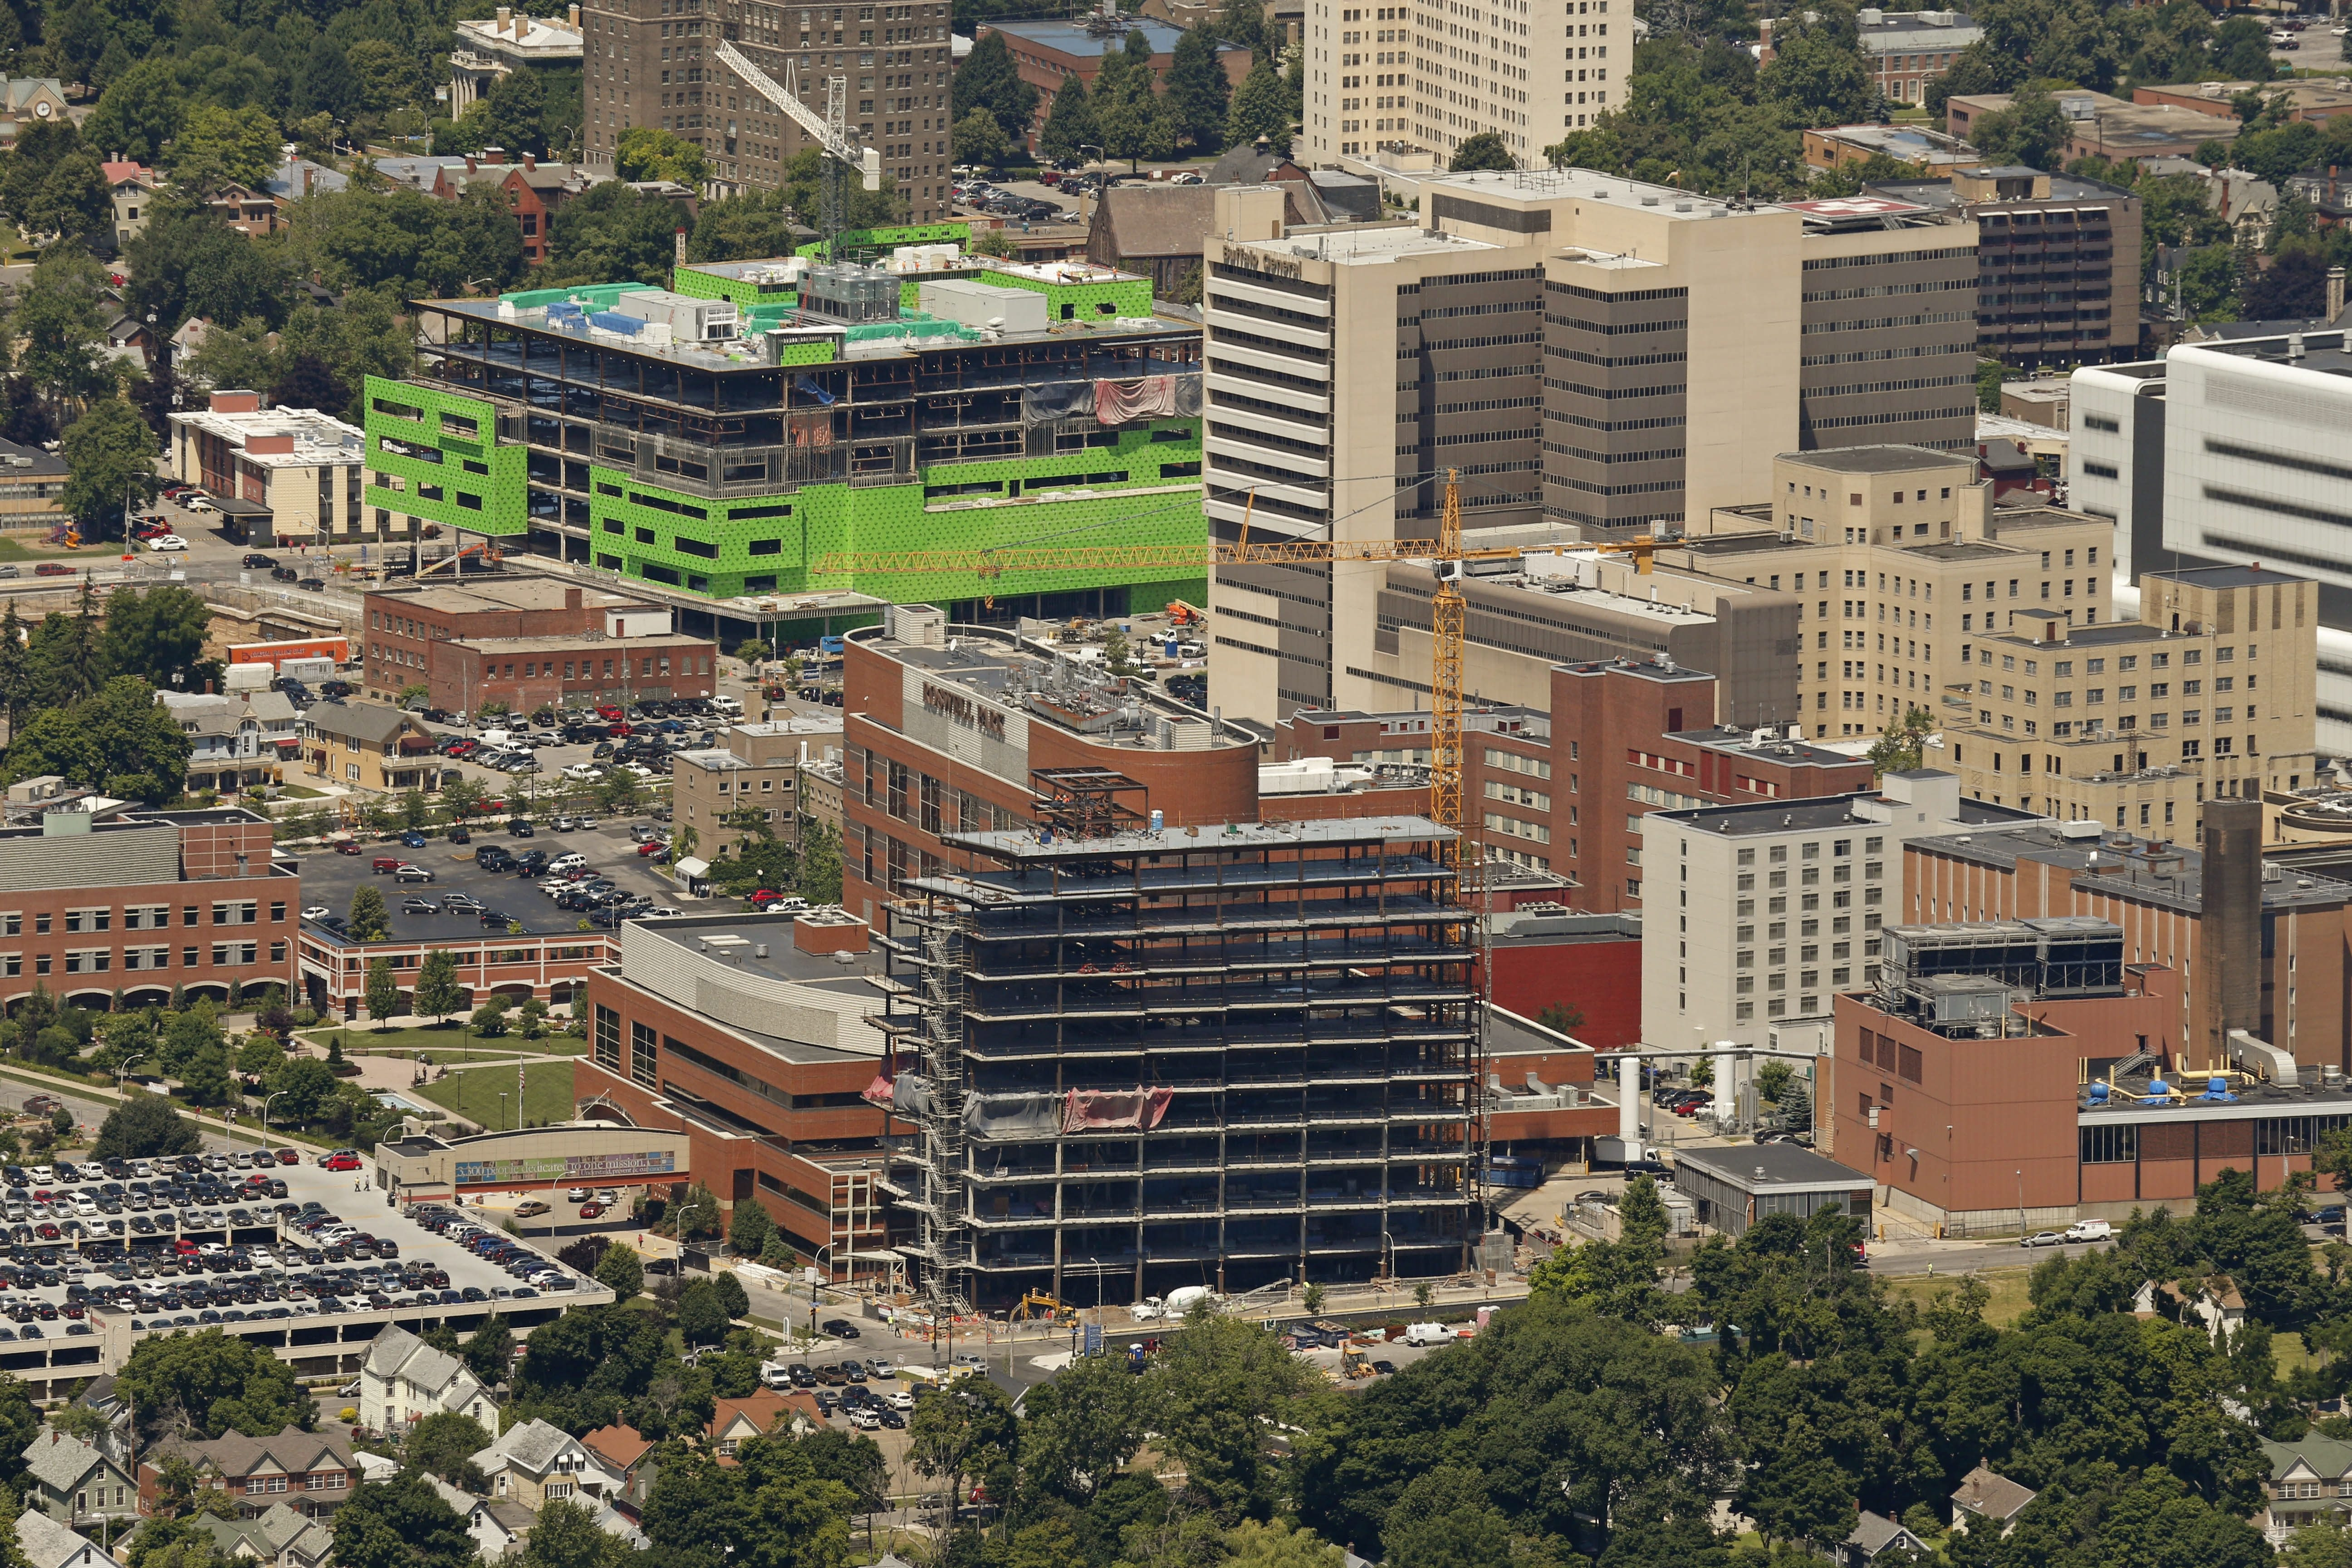 Growth of the Buffalo Niagara Medical Campus is spurring development around the 30-square-block area, just as it was predicted to do.